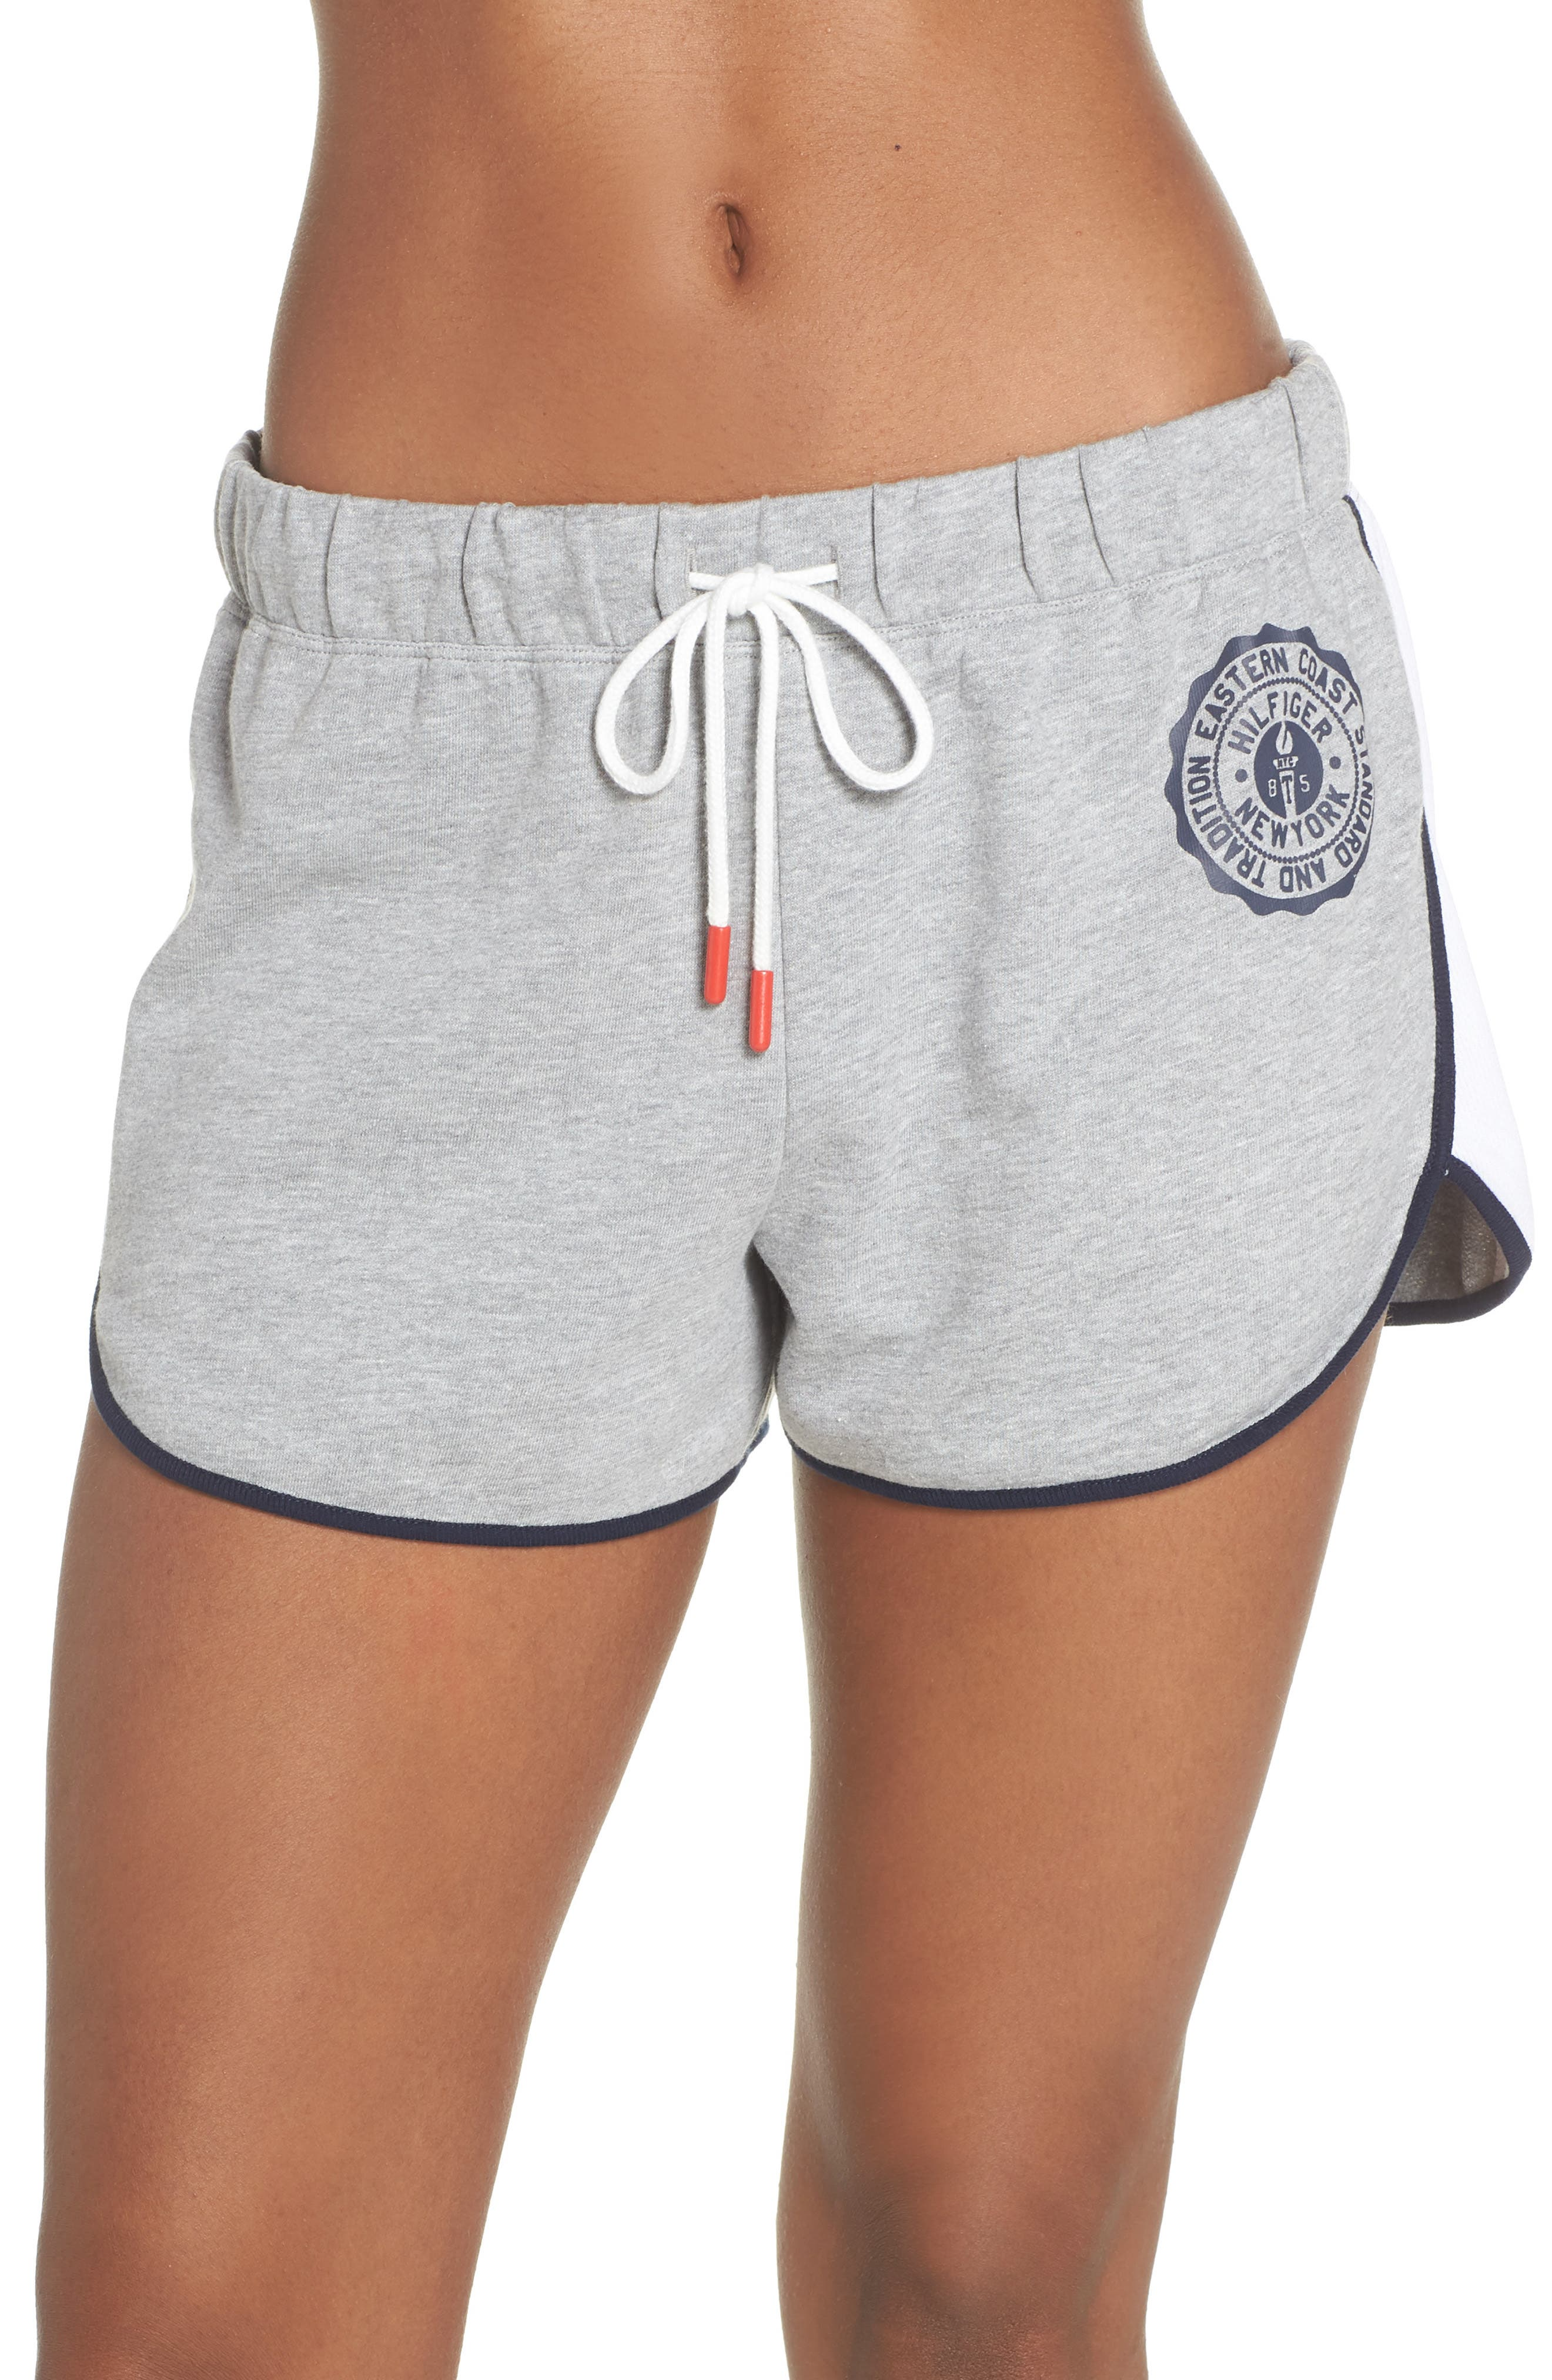 Lounge Shorts,                         Main,                         color, Heather Gray